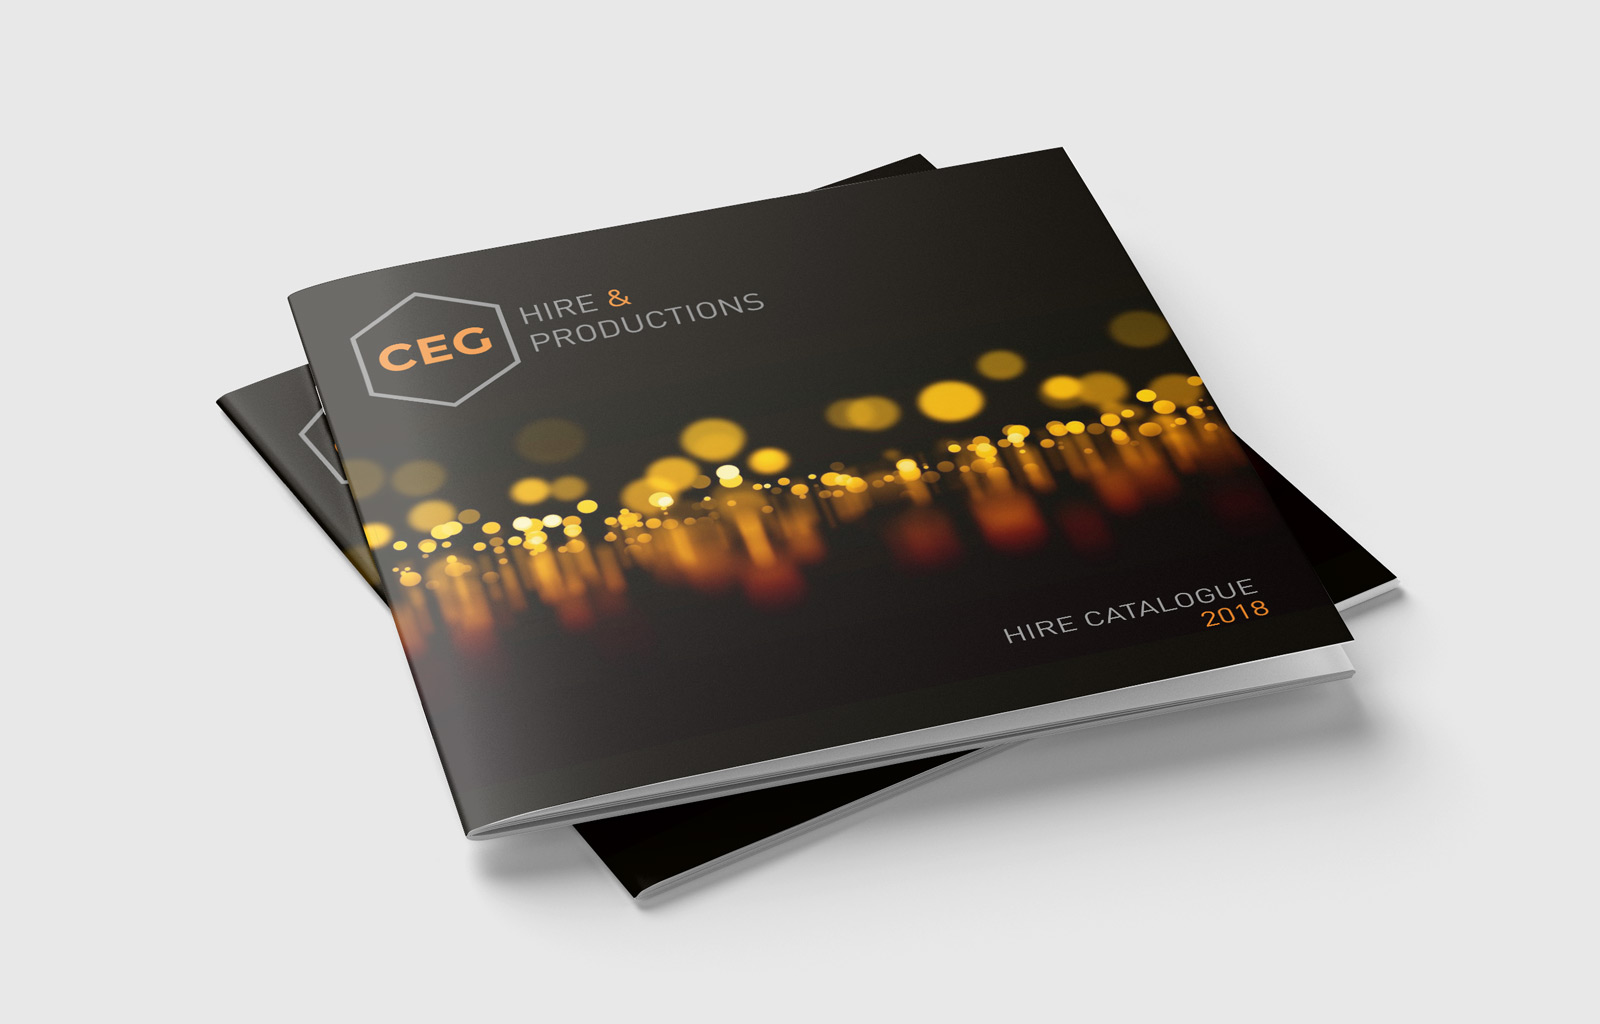 CEG Hire & Productions Catalogue Cover